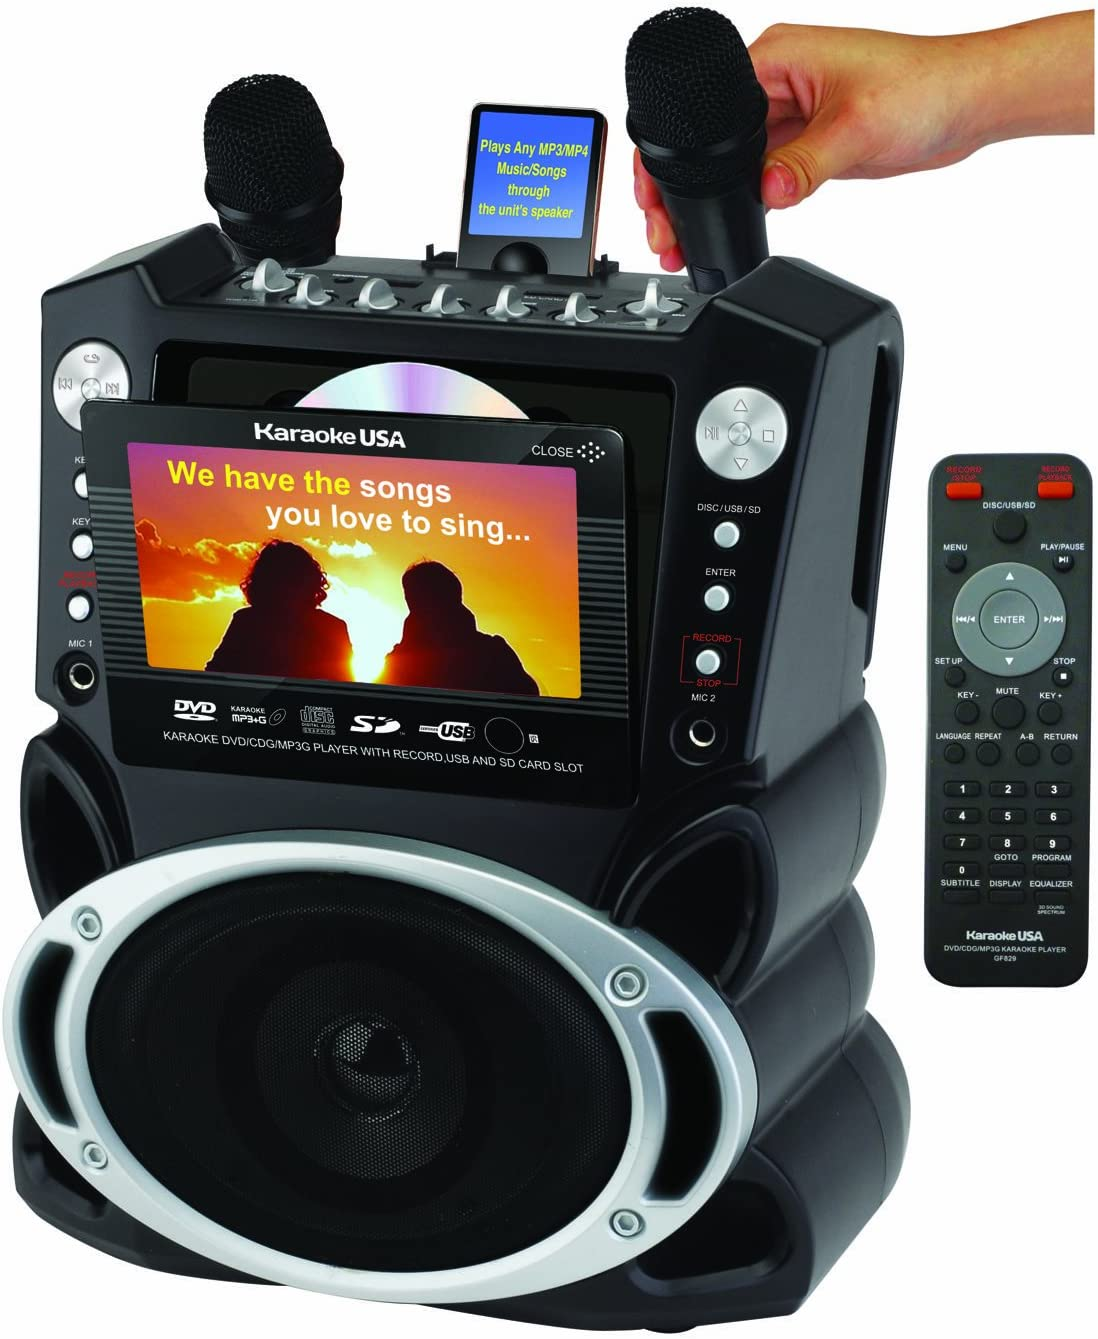 (OLD MODEL) Karaoke USA Karaoke System with 7-Inch TFT Color Screen and Record Function (GF829) 71QXTKewwPLSL1400_